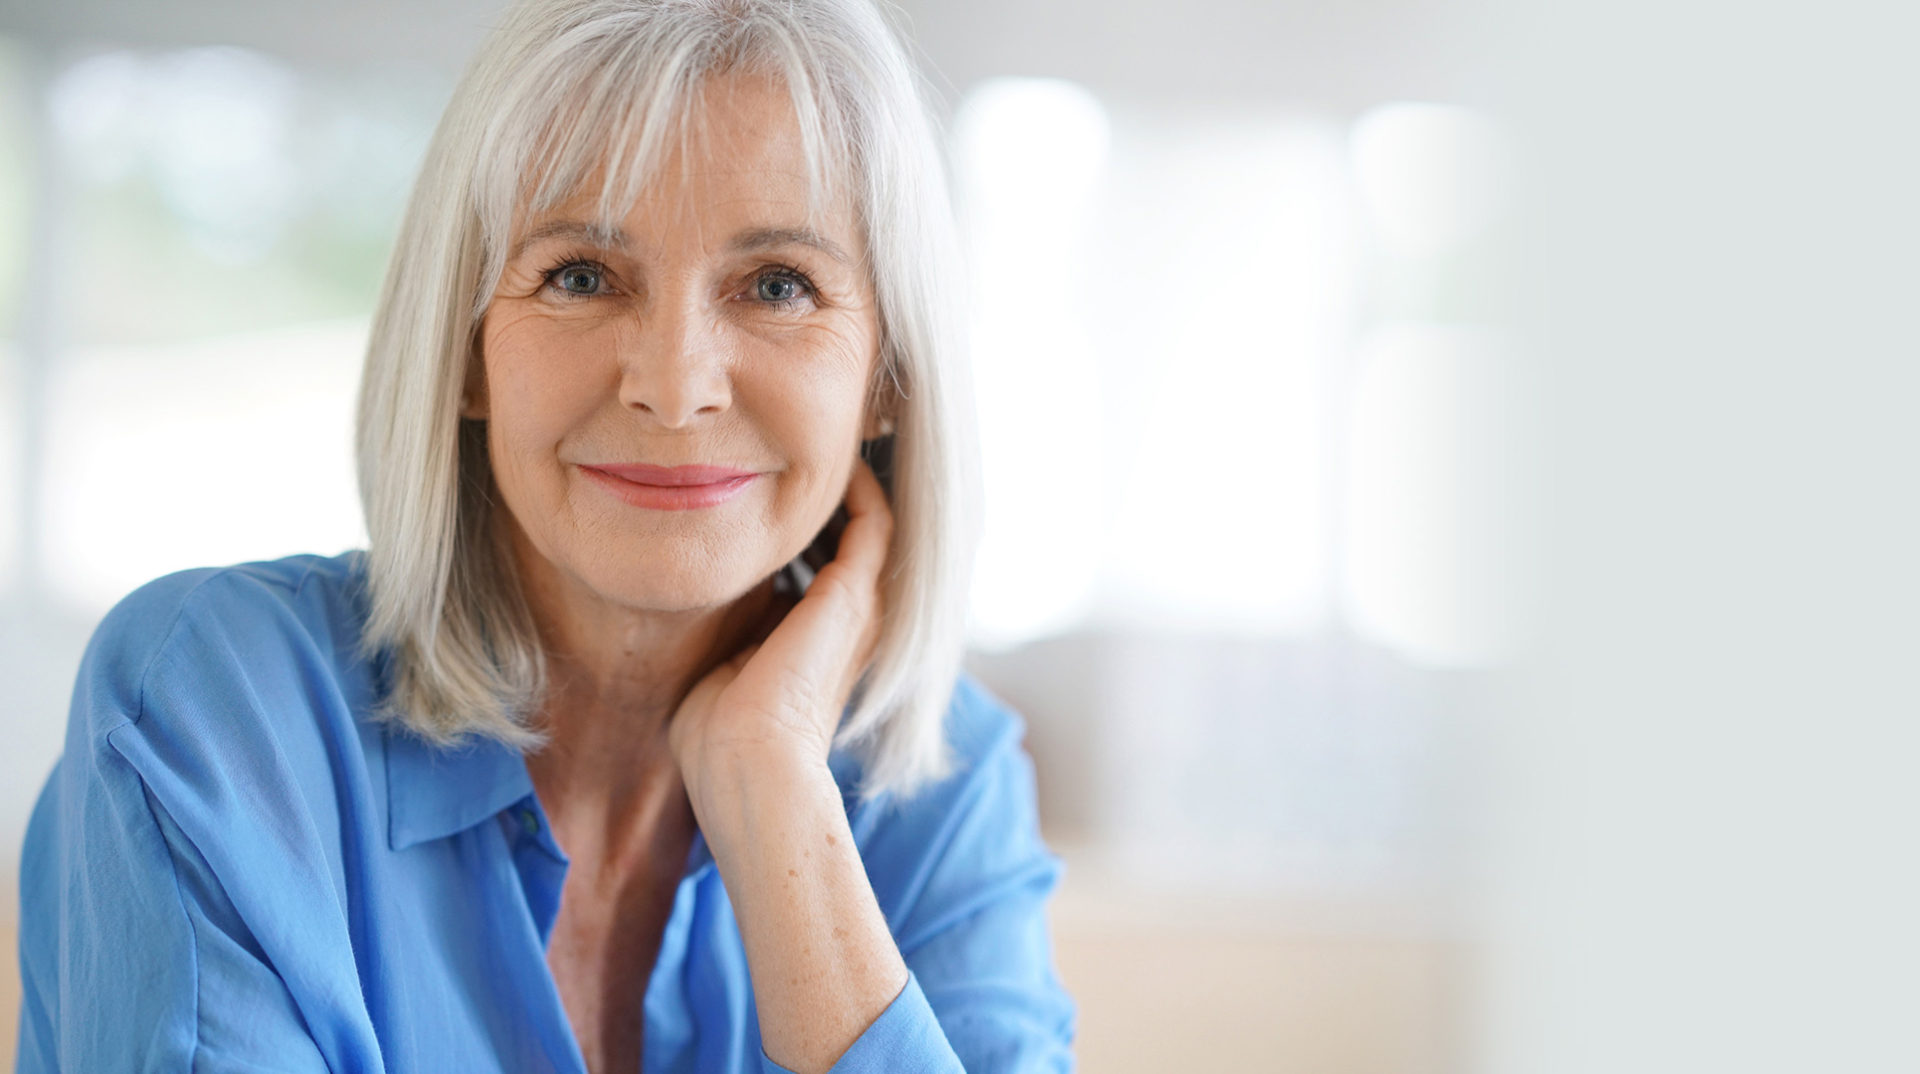 aesthetic services for mature women